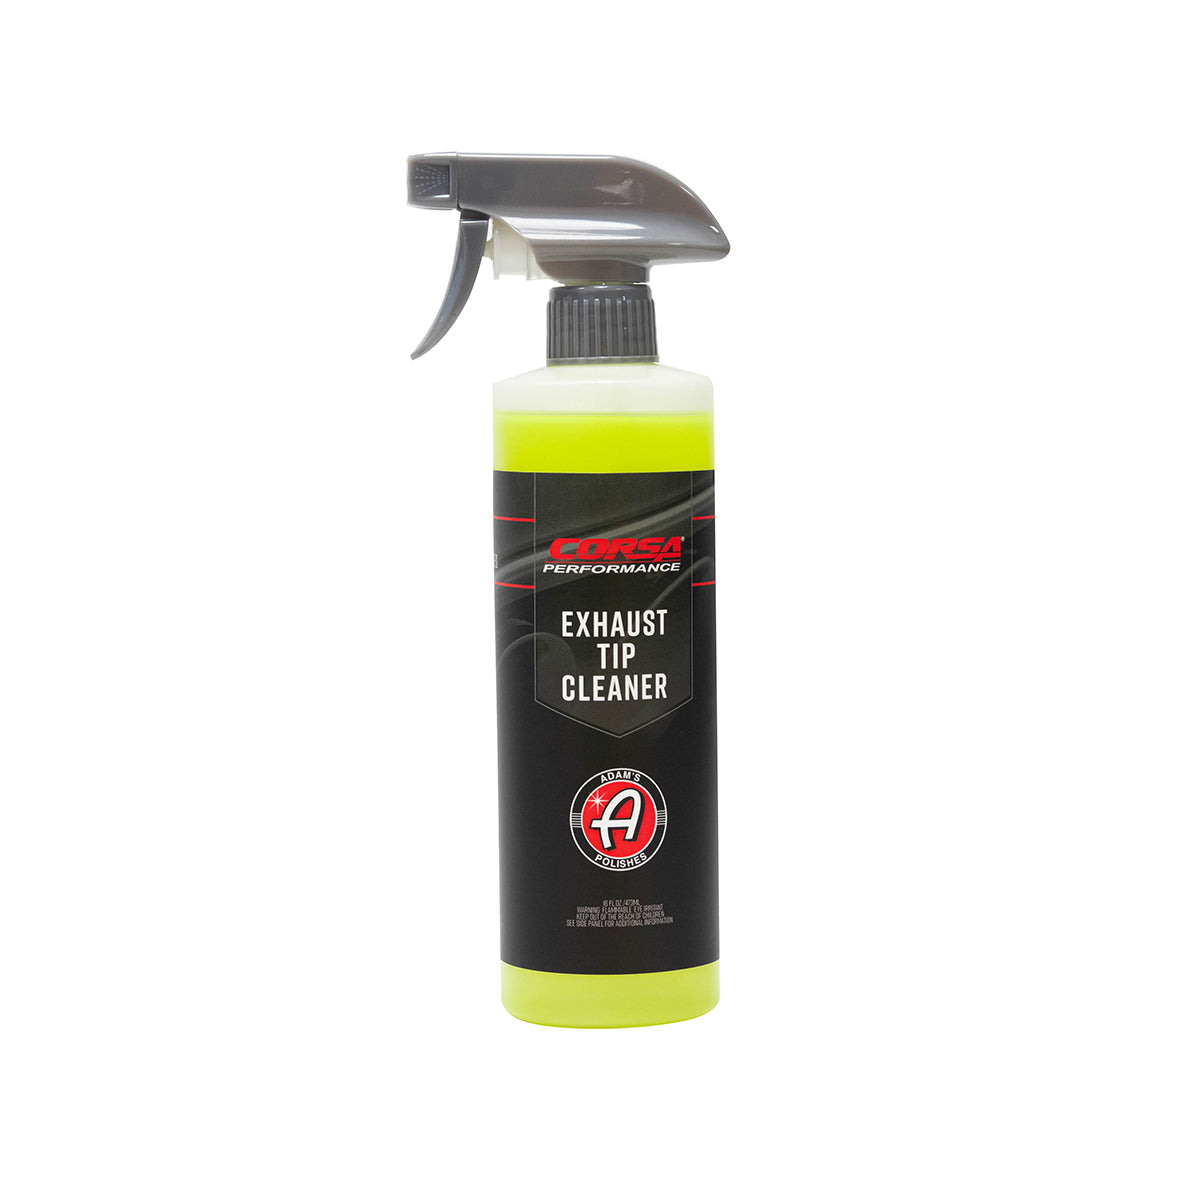 Exhaust Tip Cleaner (14091) 16 FL OZ